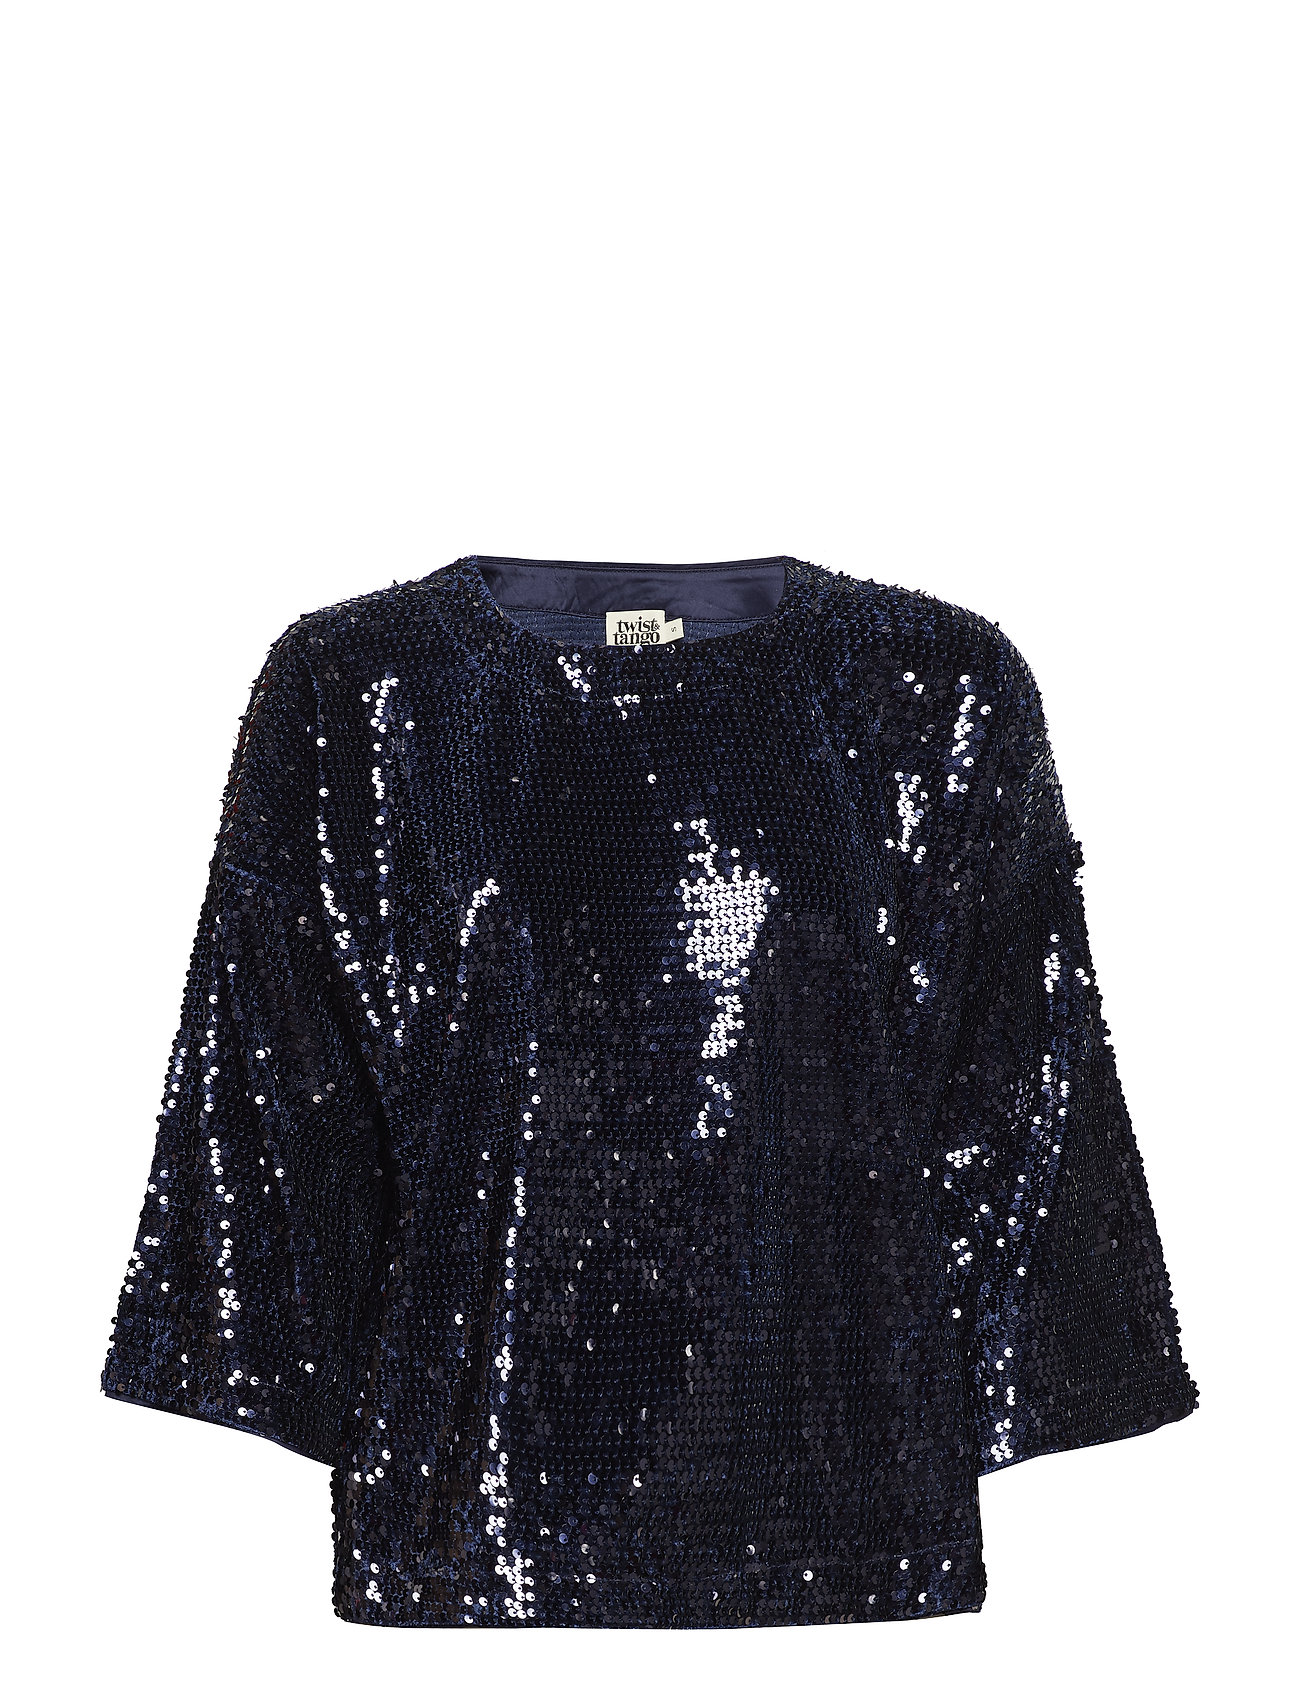 Twist & Tango Unni Sequin Top Navy XS - NAVY